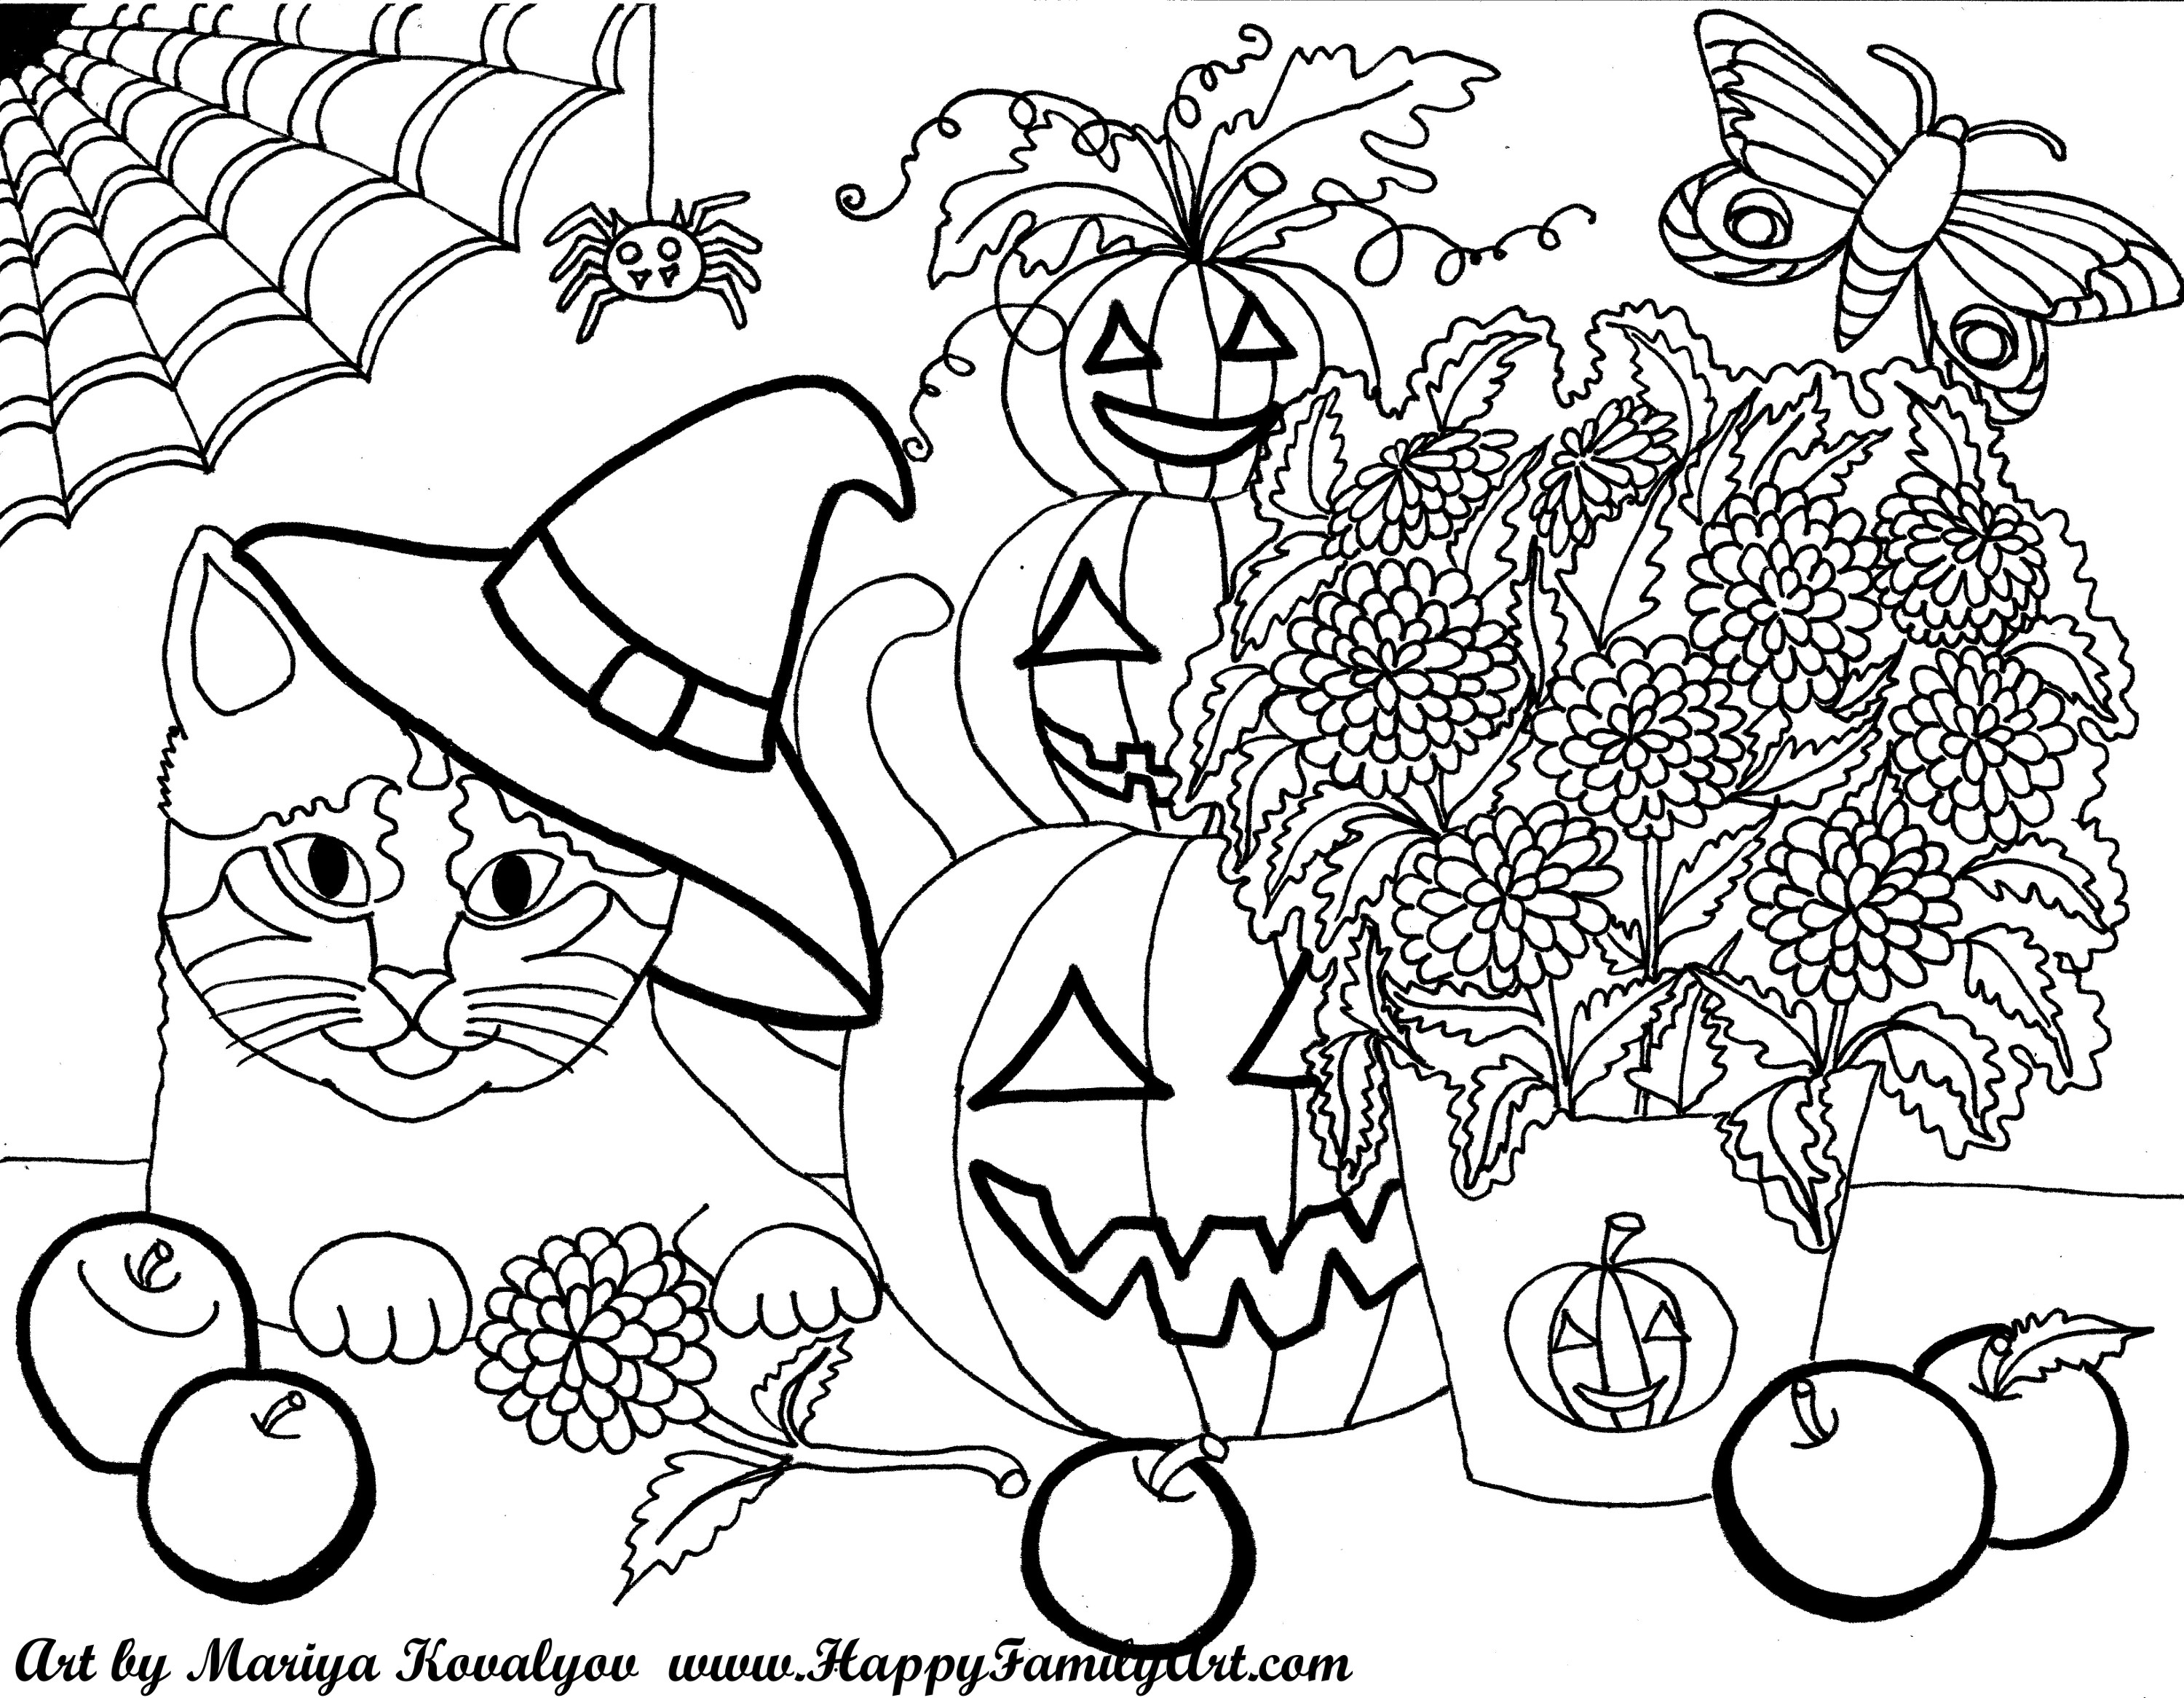 Paint Coloring Pages Printable http://remoldingyourhome.org is a ... | 2333x3000